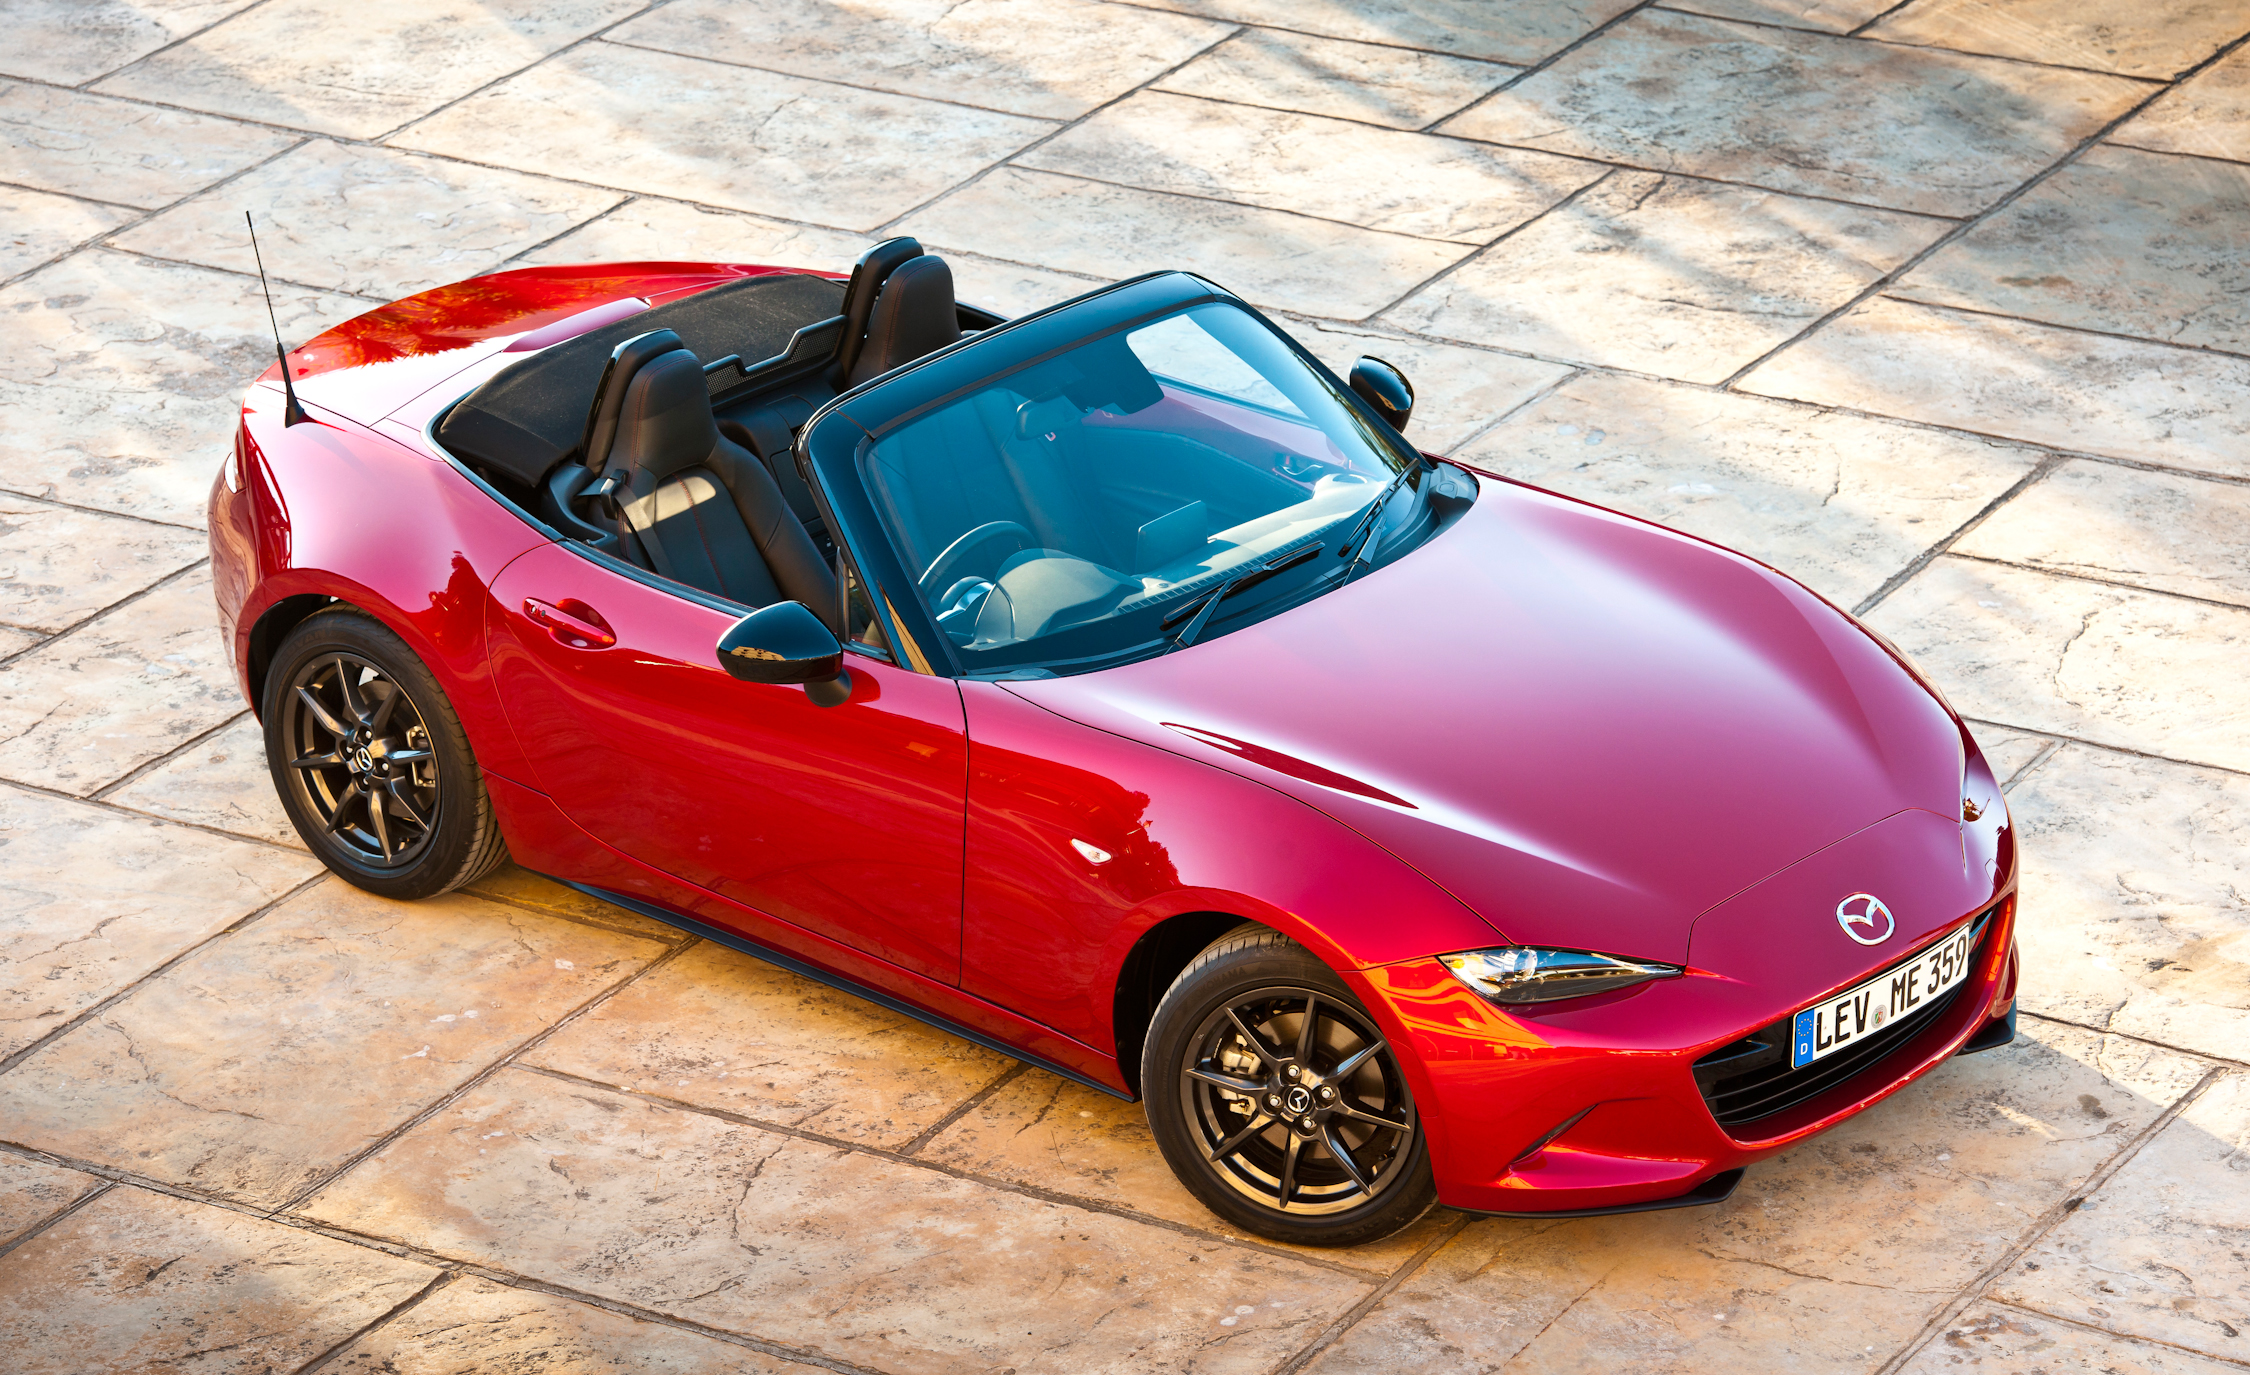 2016 Mazda MX-5 Miata Pictures Gallery (31 Images)